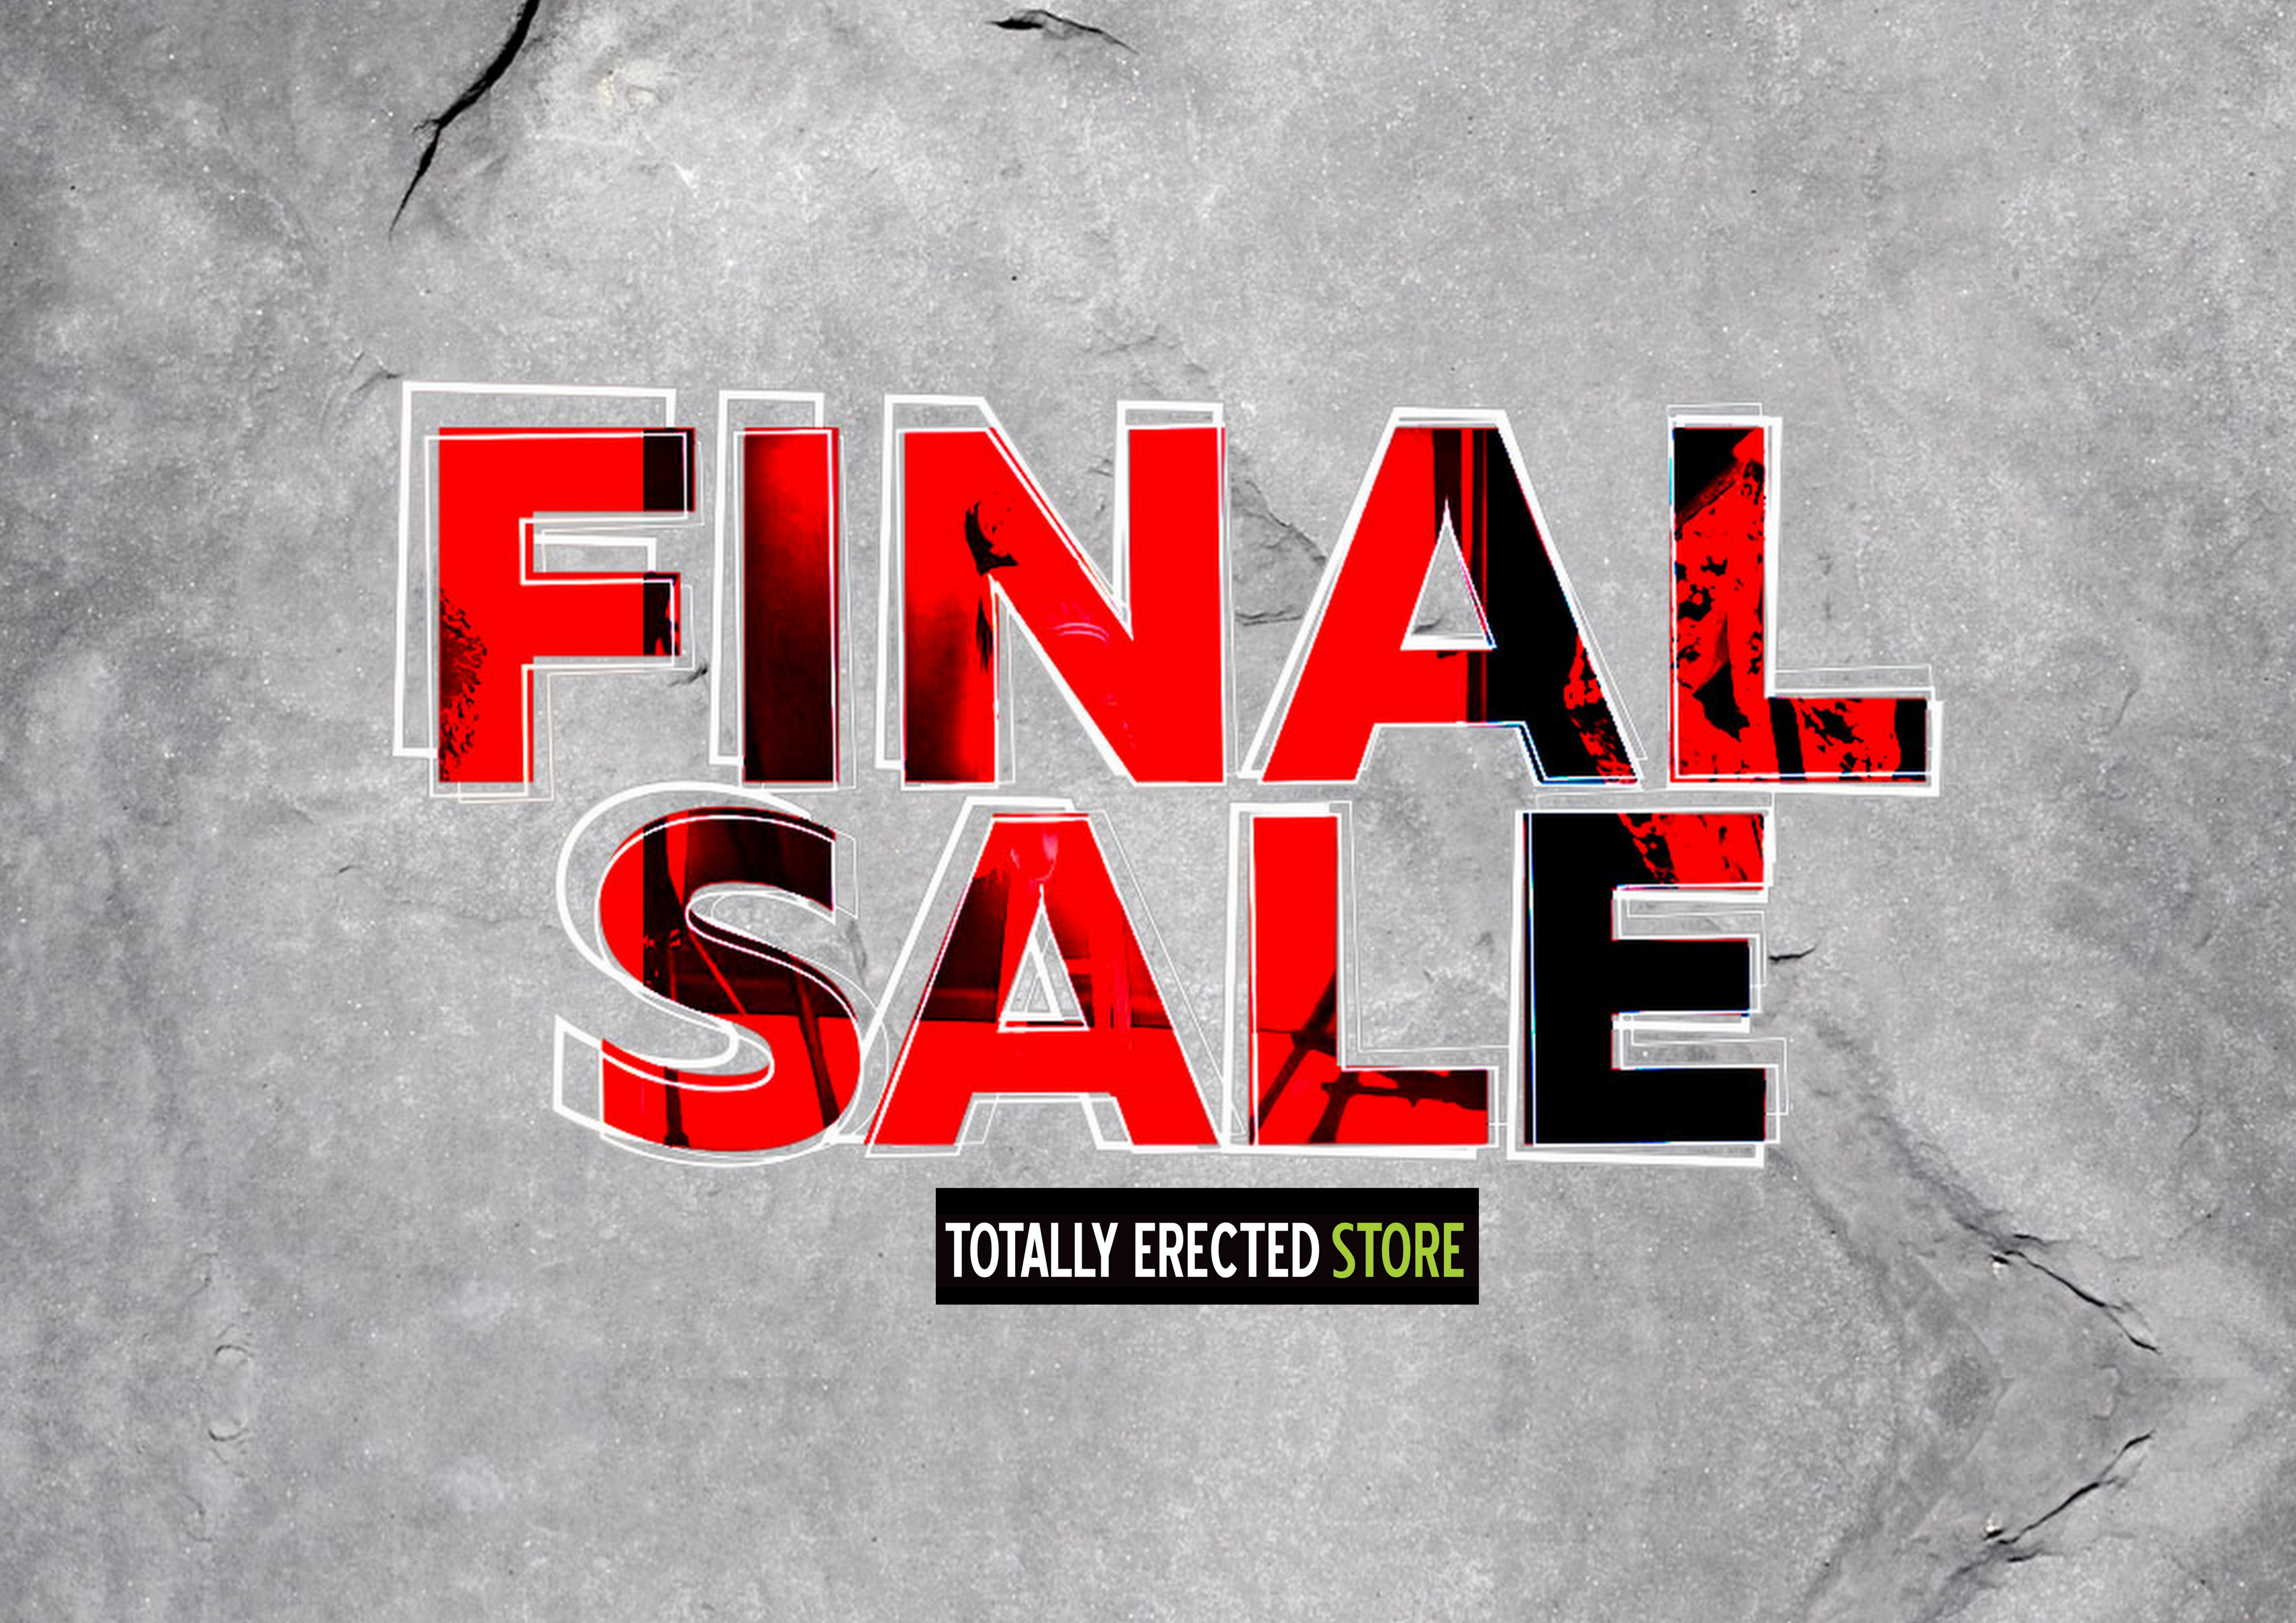 FINAL SALE – TOTALLY ERECTED STORE